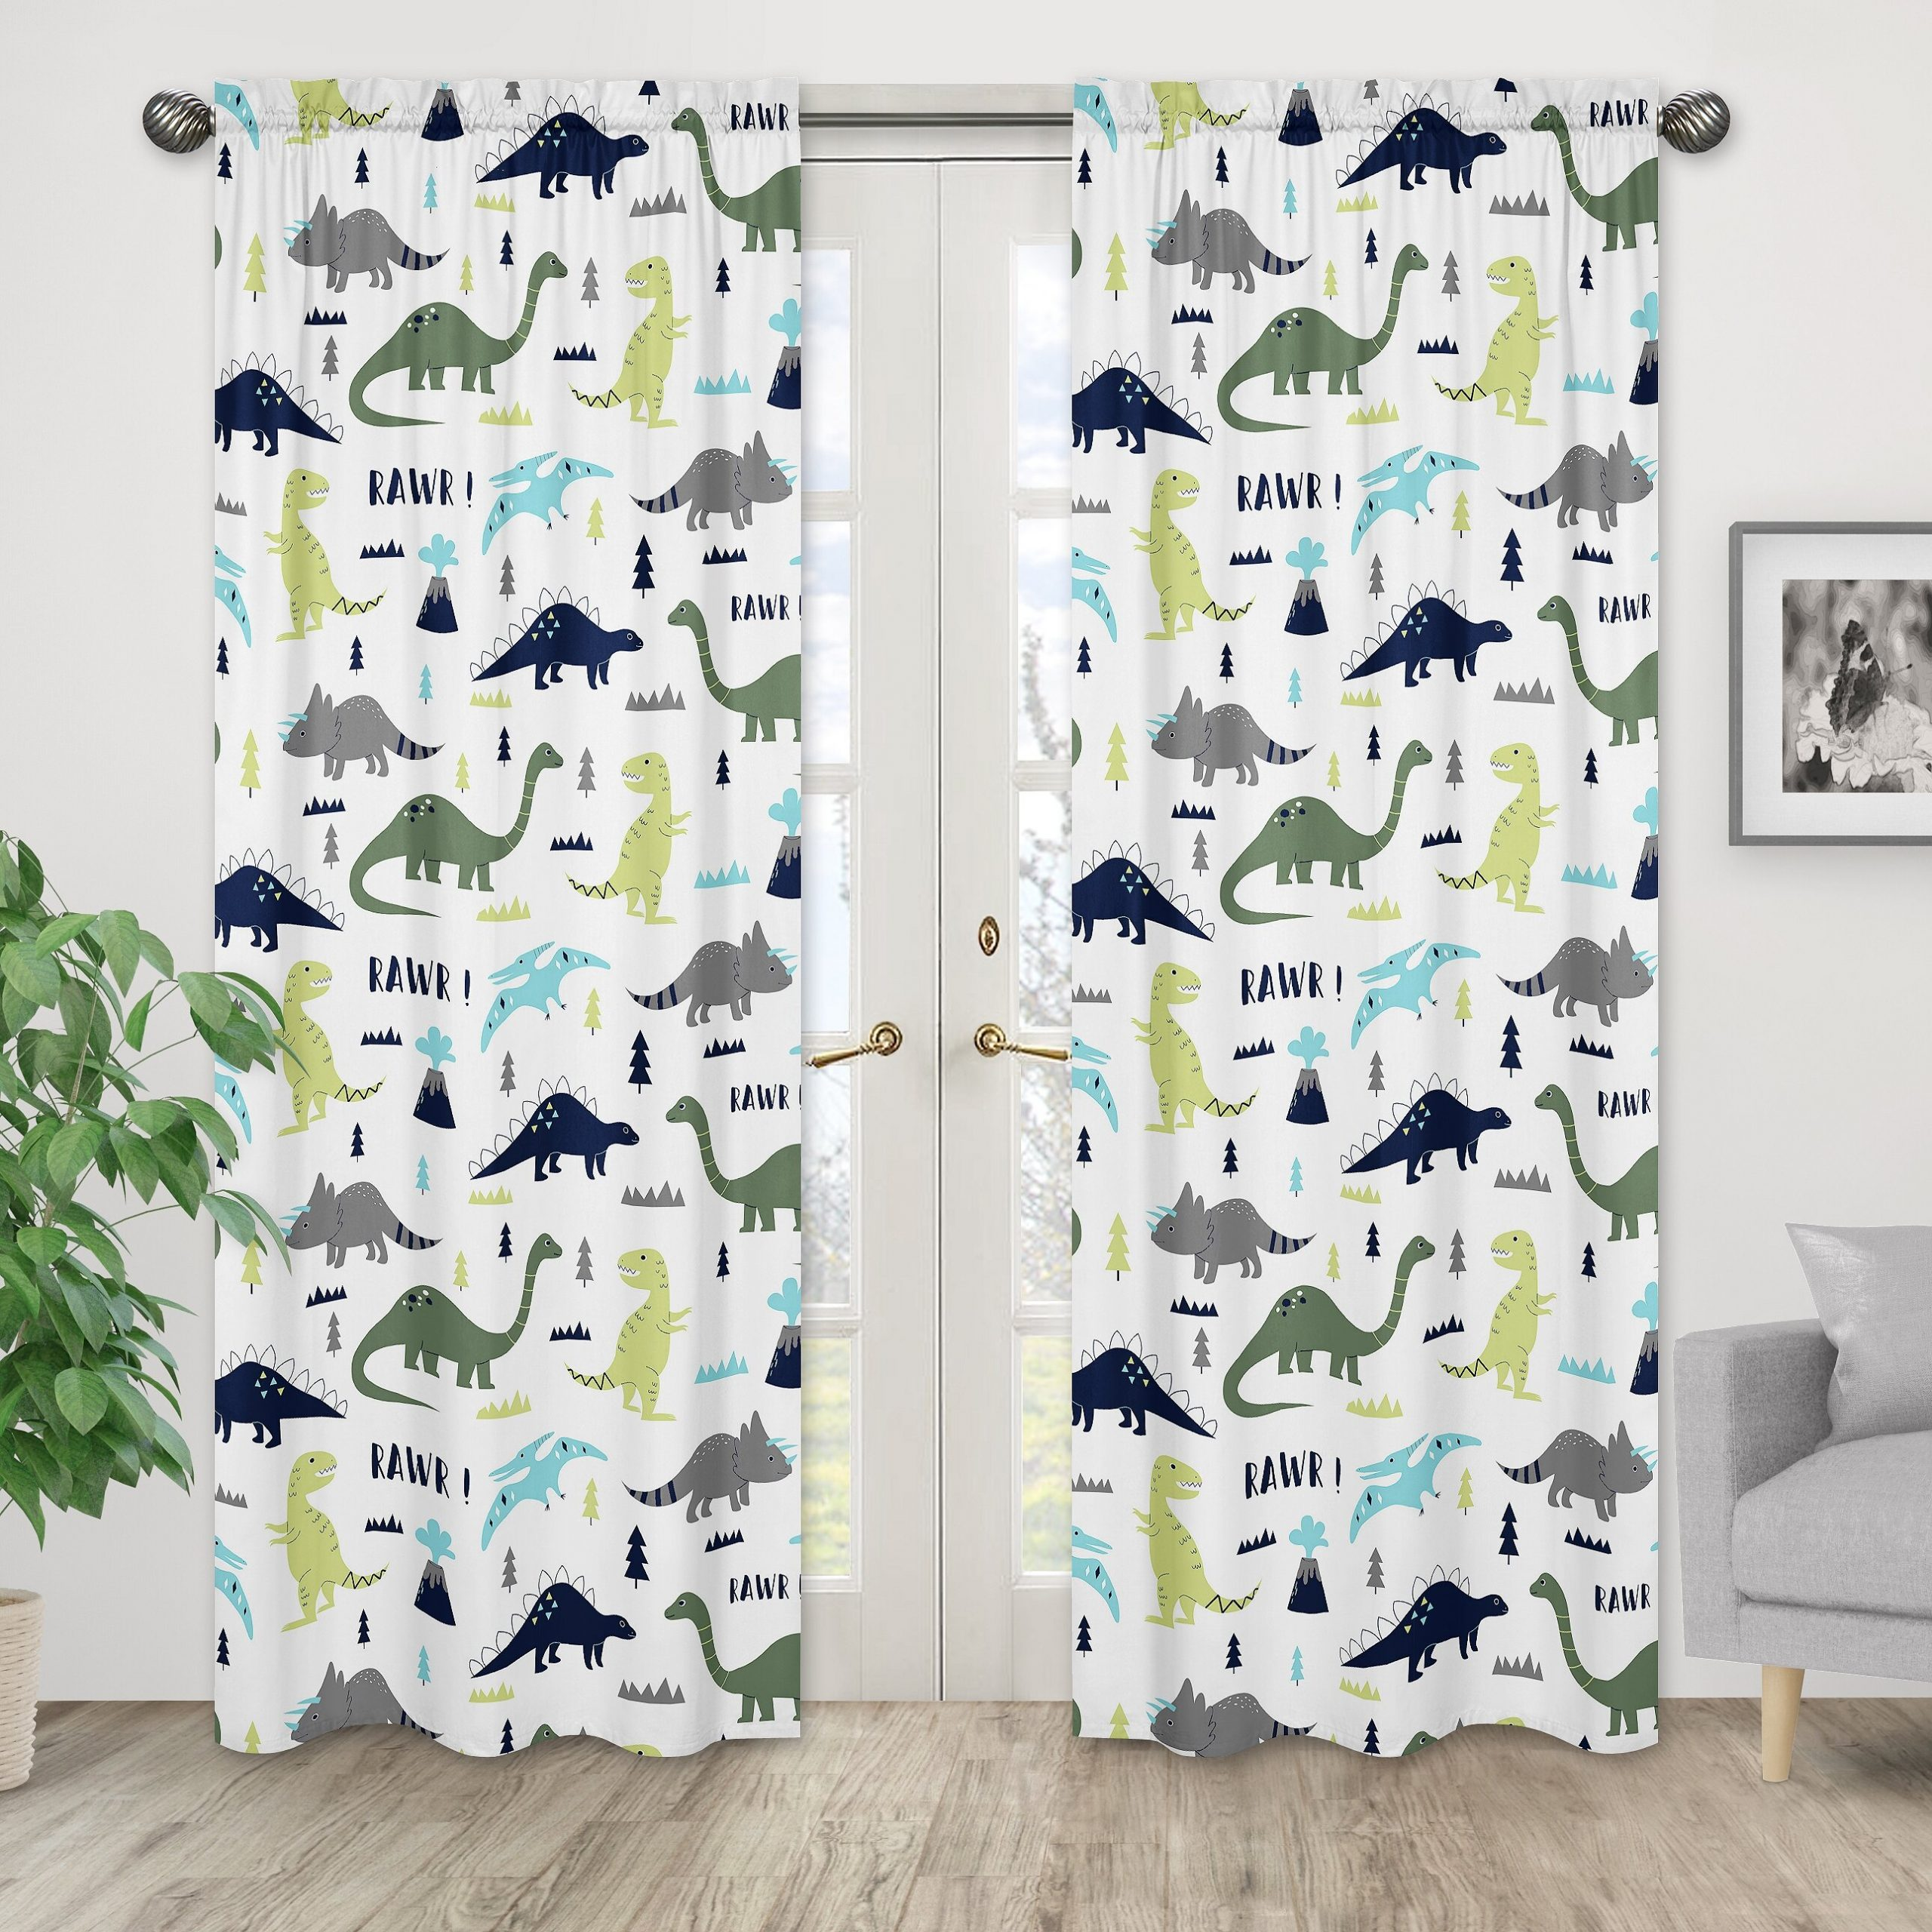 Mod Dinosaur Wildlife Semi Opaque Rod Pocket Curtain Panels With Recent Blended Fabric Mod Dinosaur 3 Piece Wall Hangings Set (View 4 of 20)